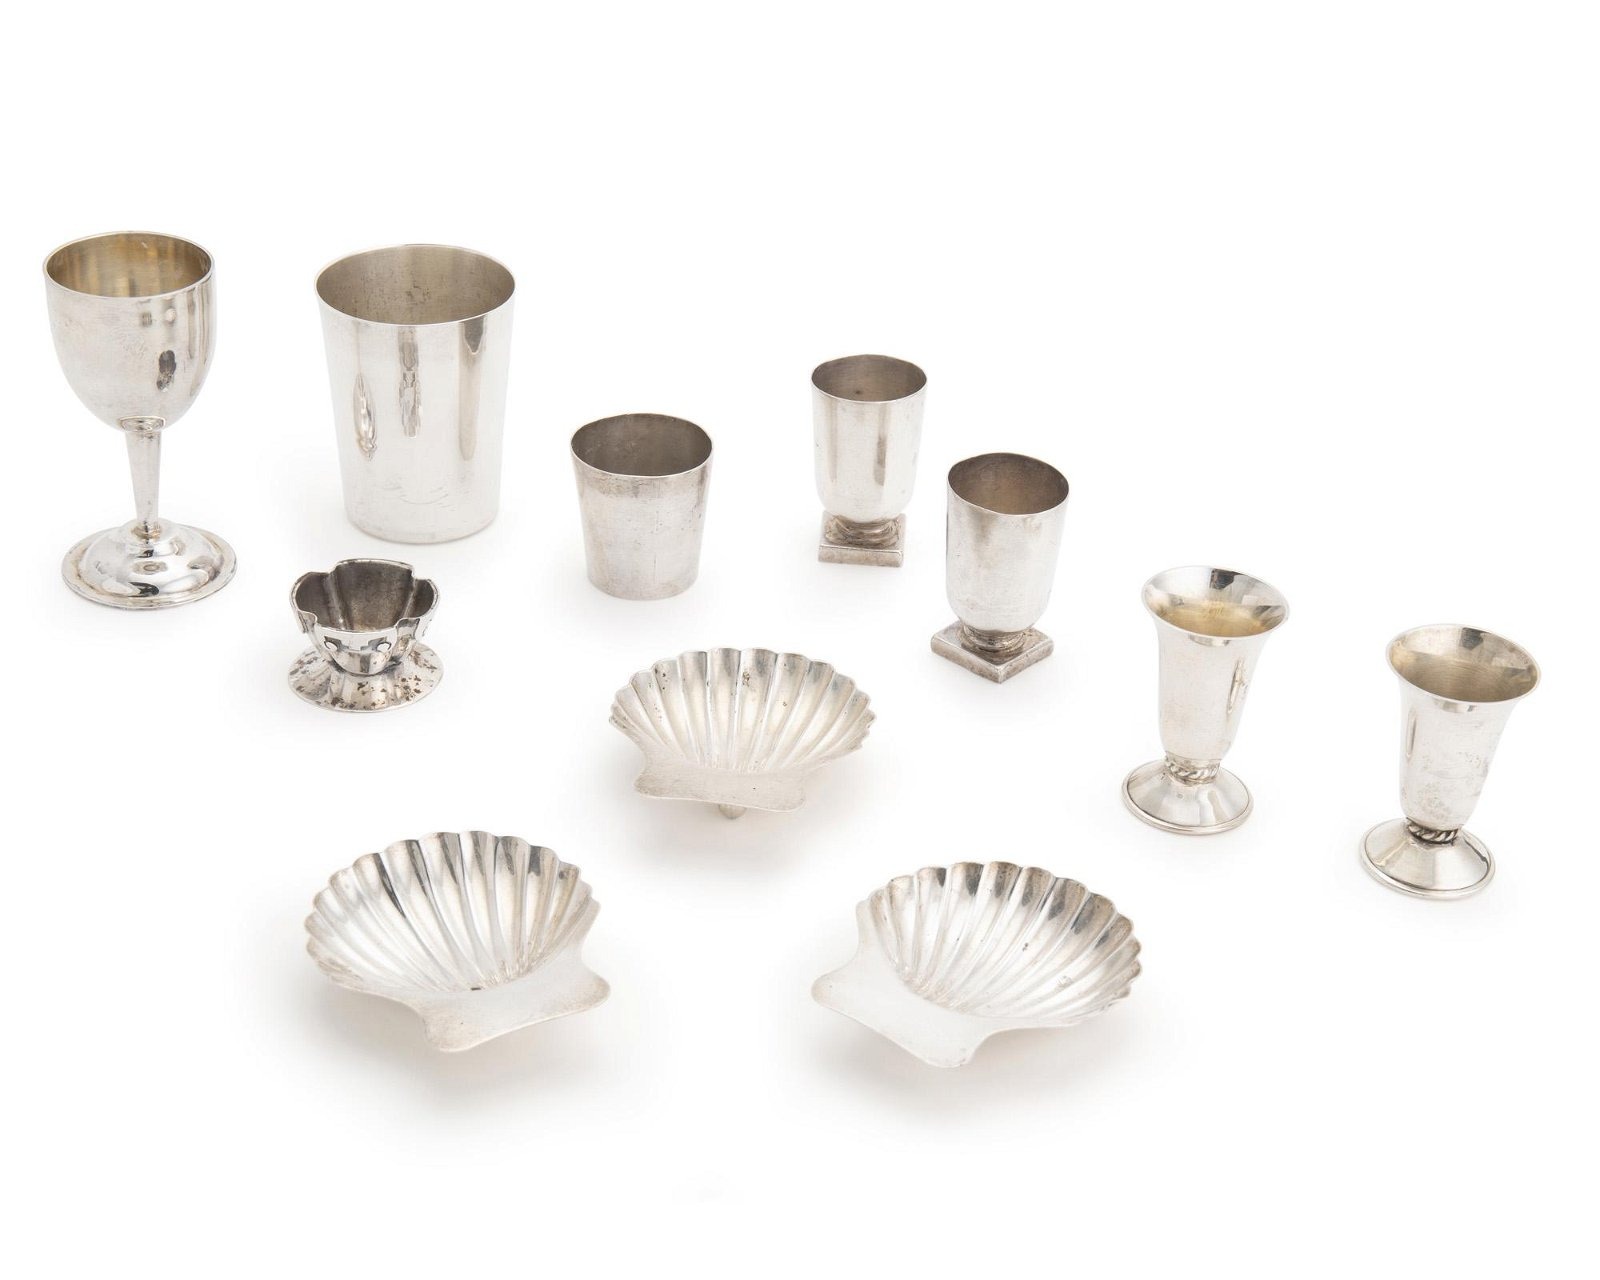 A large group of Mexican sterling silver items